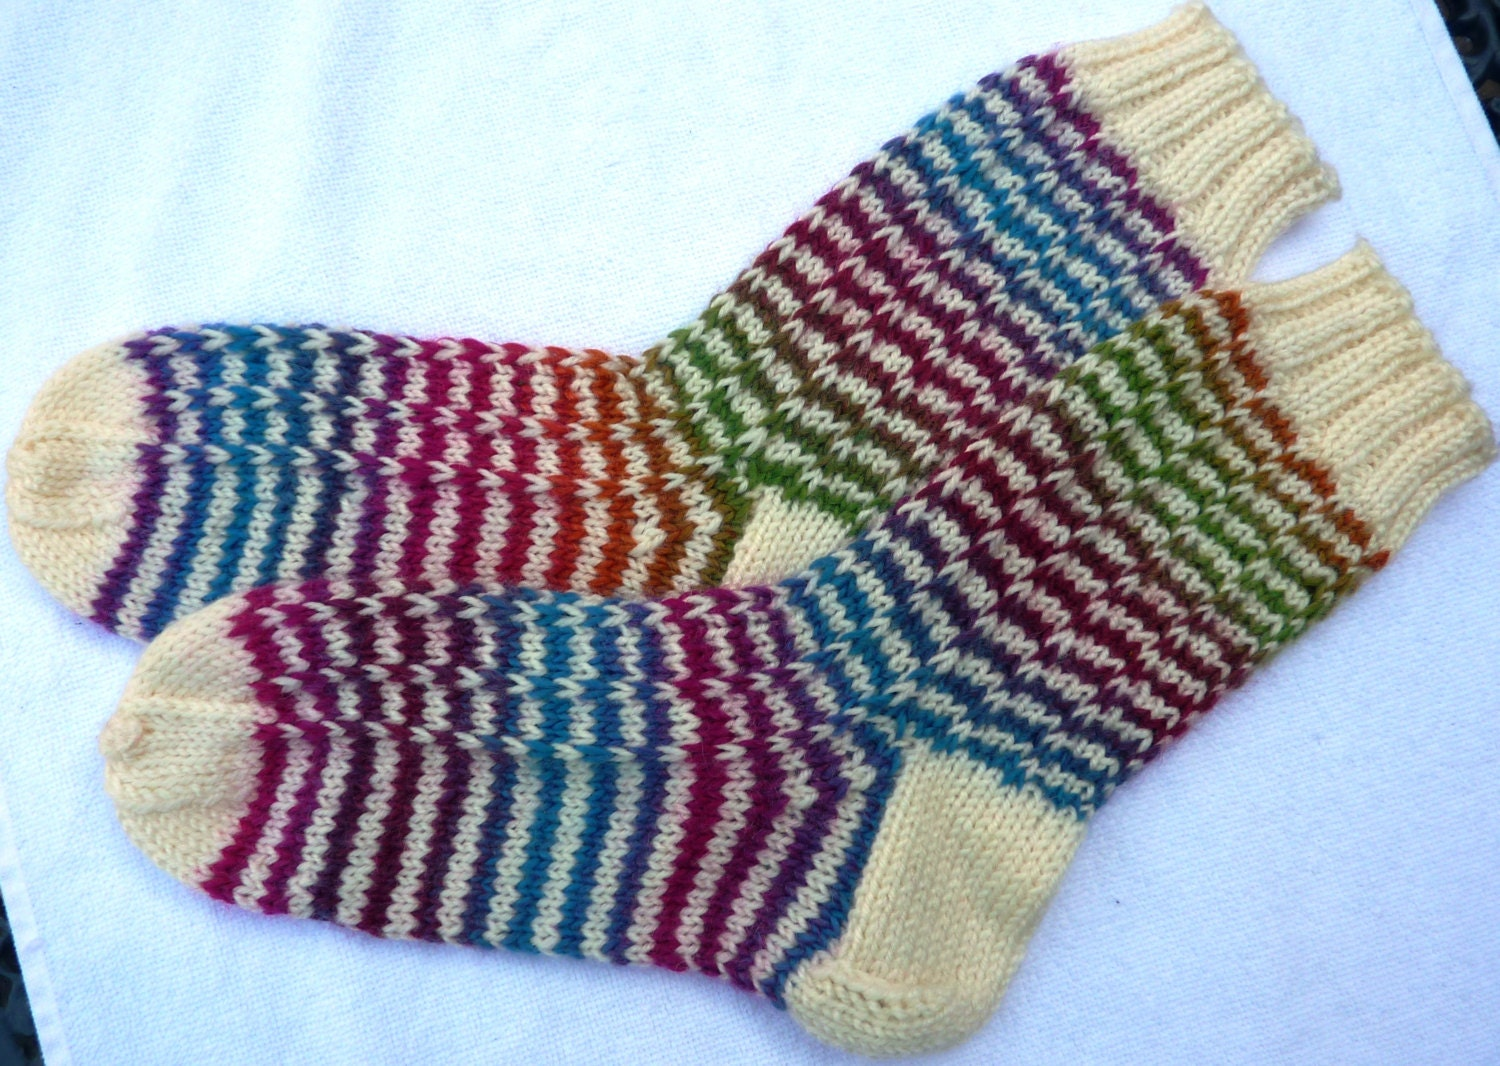 Knitting Pattern For Sport Socks : Warm and soft knitted socks Sport socks knit Knit boot